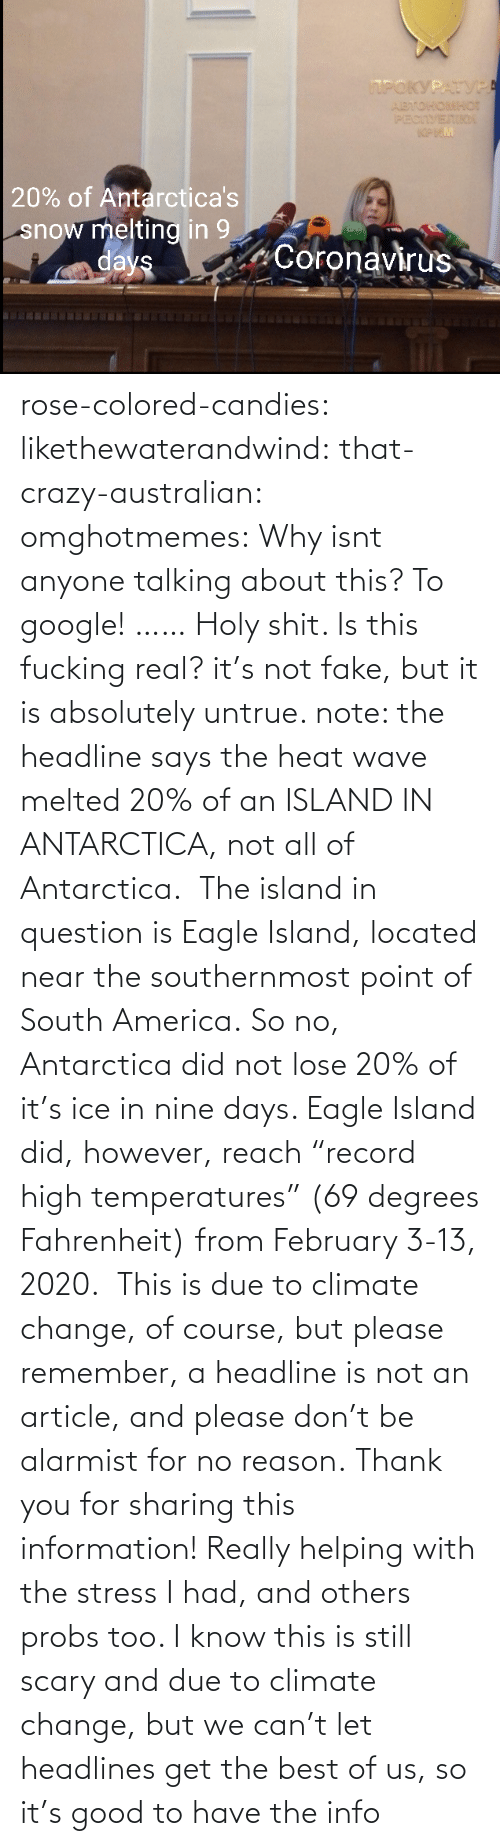 "south: rose-colored-candies: likethewaterandwind:   that-crazy-australian:  omghotmemes:  Why isnt anyone talking about this?   To google!  ……   Holy shit. Is this fucking real?   it's not fake, but it is absolutely untrue. note: the headline says the heat wave melted 20% of an ISLAND IN ANTARCTICA, not all of Antarctica.  The island in question is Eagle Island, located near the southernmost point of South America. So no, Antarctica did not lose 20% of it's ice in nine days. Eagle Island did, however, reach ""record high temperatures"" (69 degrees Fahrenheit) from February 3-13, 2020.  This is due to climate change, of course, but please remember, a headline is not an article, and please don't be alarmist for no reason.    Thank you for sharing this information! Really helping with the stress I had, and others probs too. I know this is still scary and due to climate change, but we can't let headlines get the best of us, so it's good to have the info"